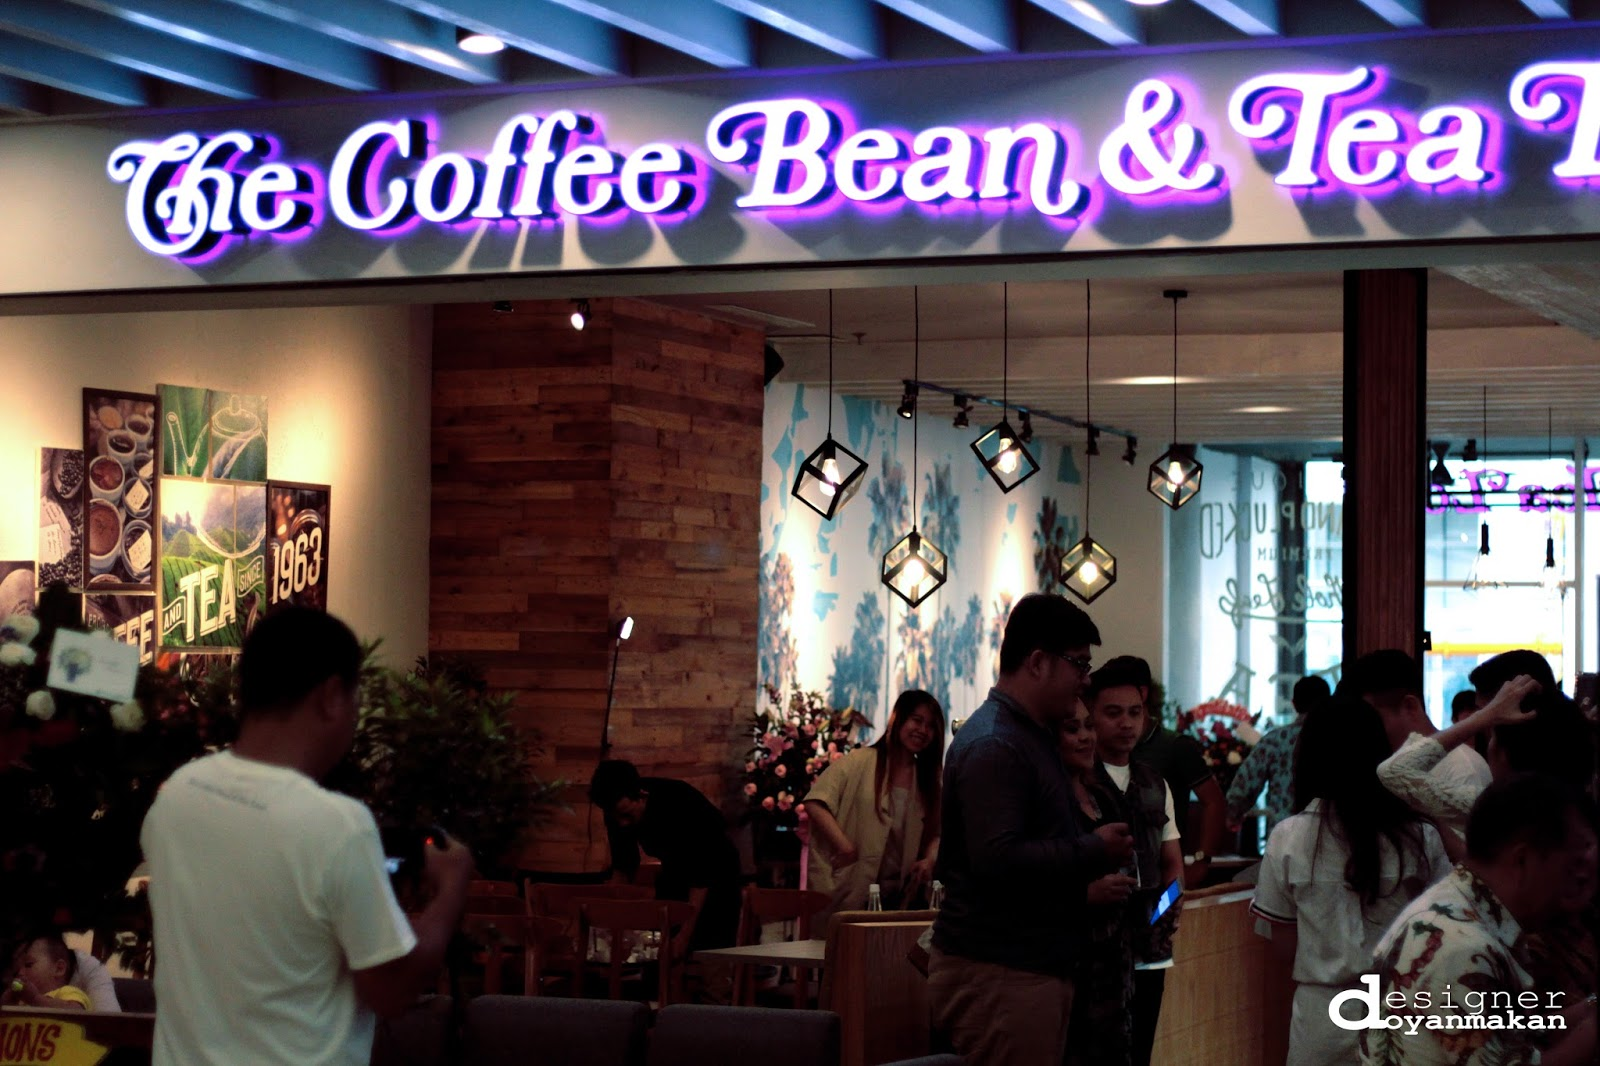 Coffeeholic Openrice Designer Doyan Makan Reopening The Coffee Bean Tea Leaf